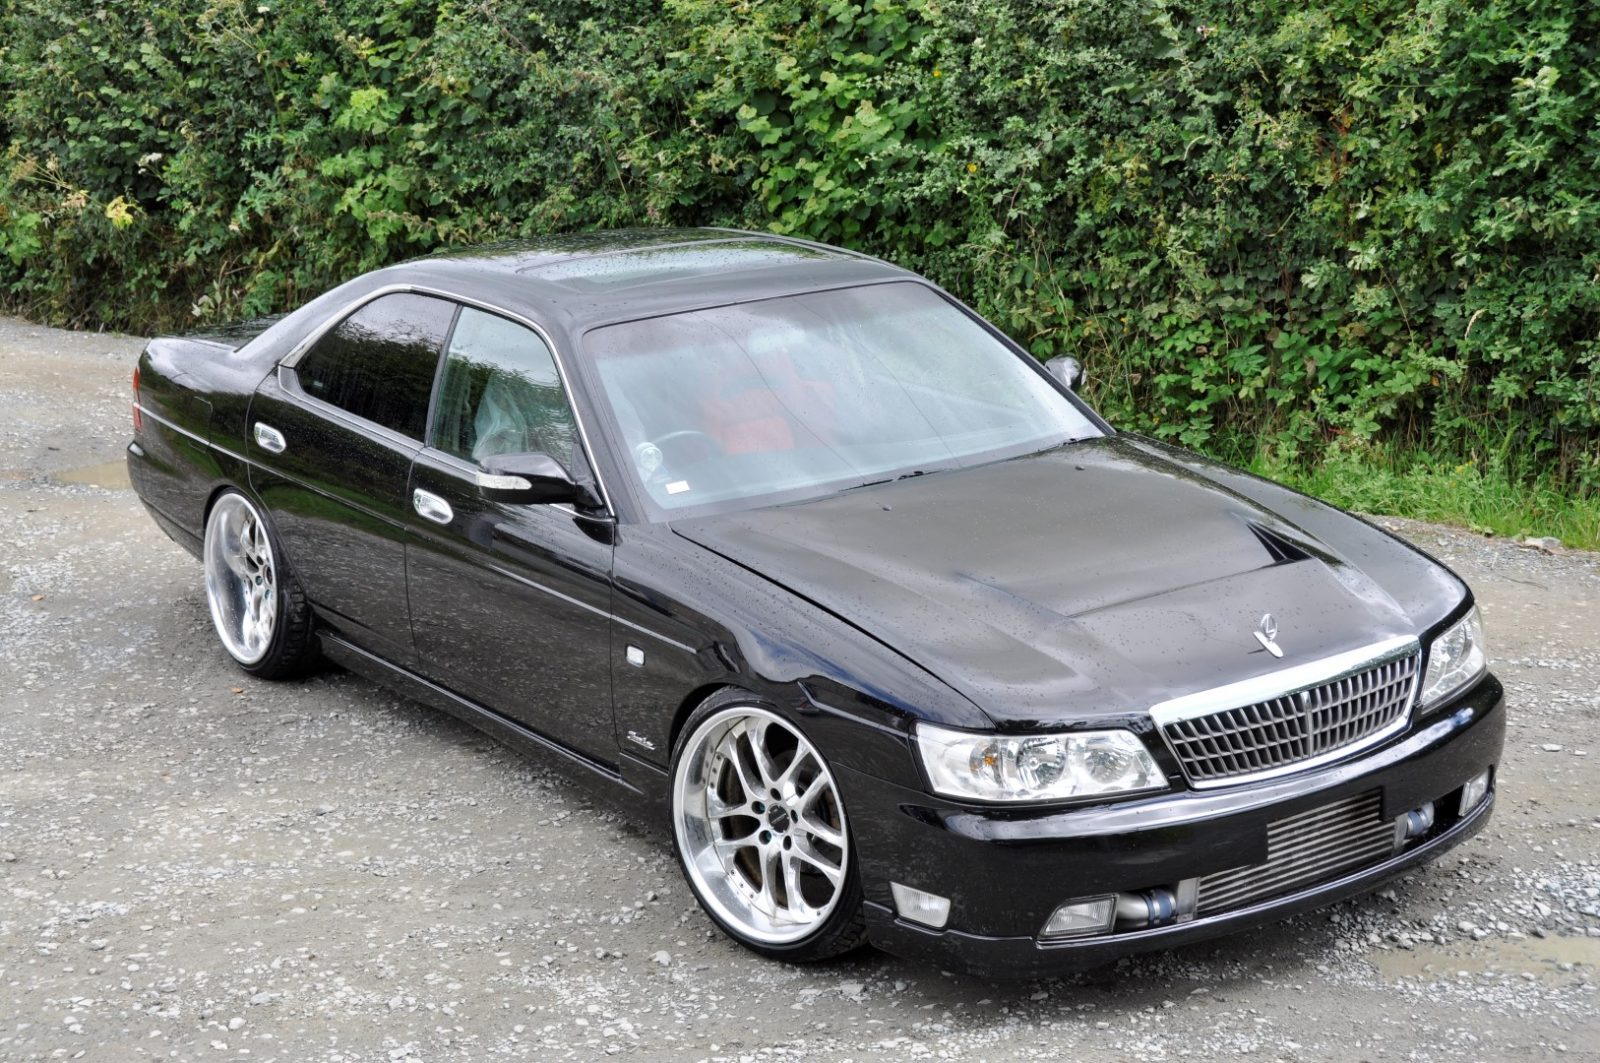 Nissan C35 Laurel Rb25det Jap Imports Uk